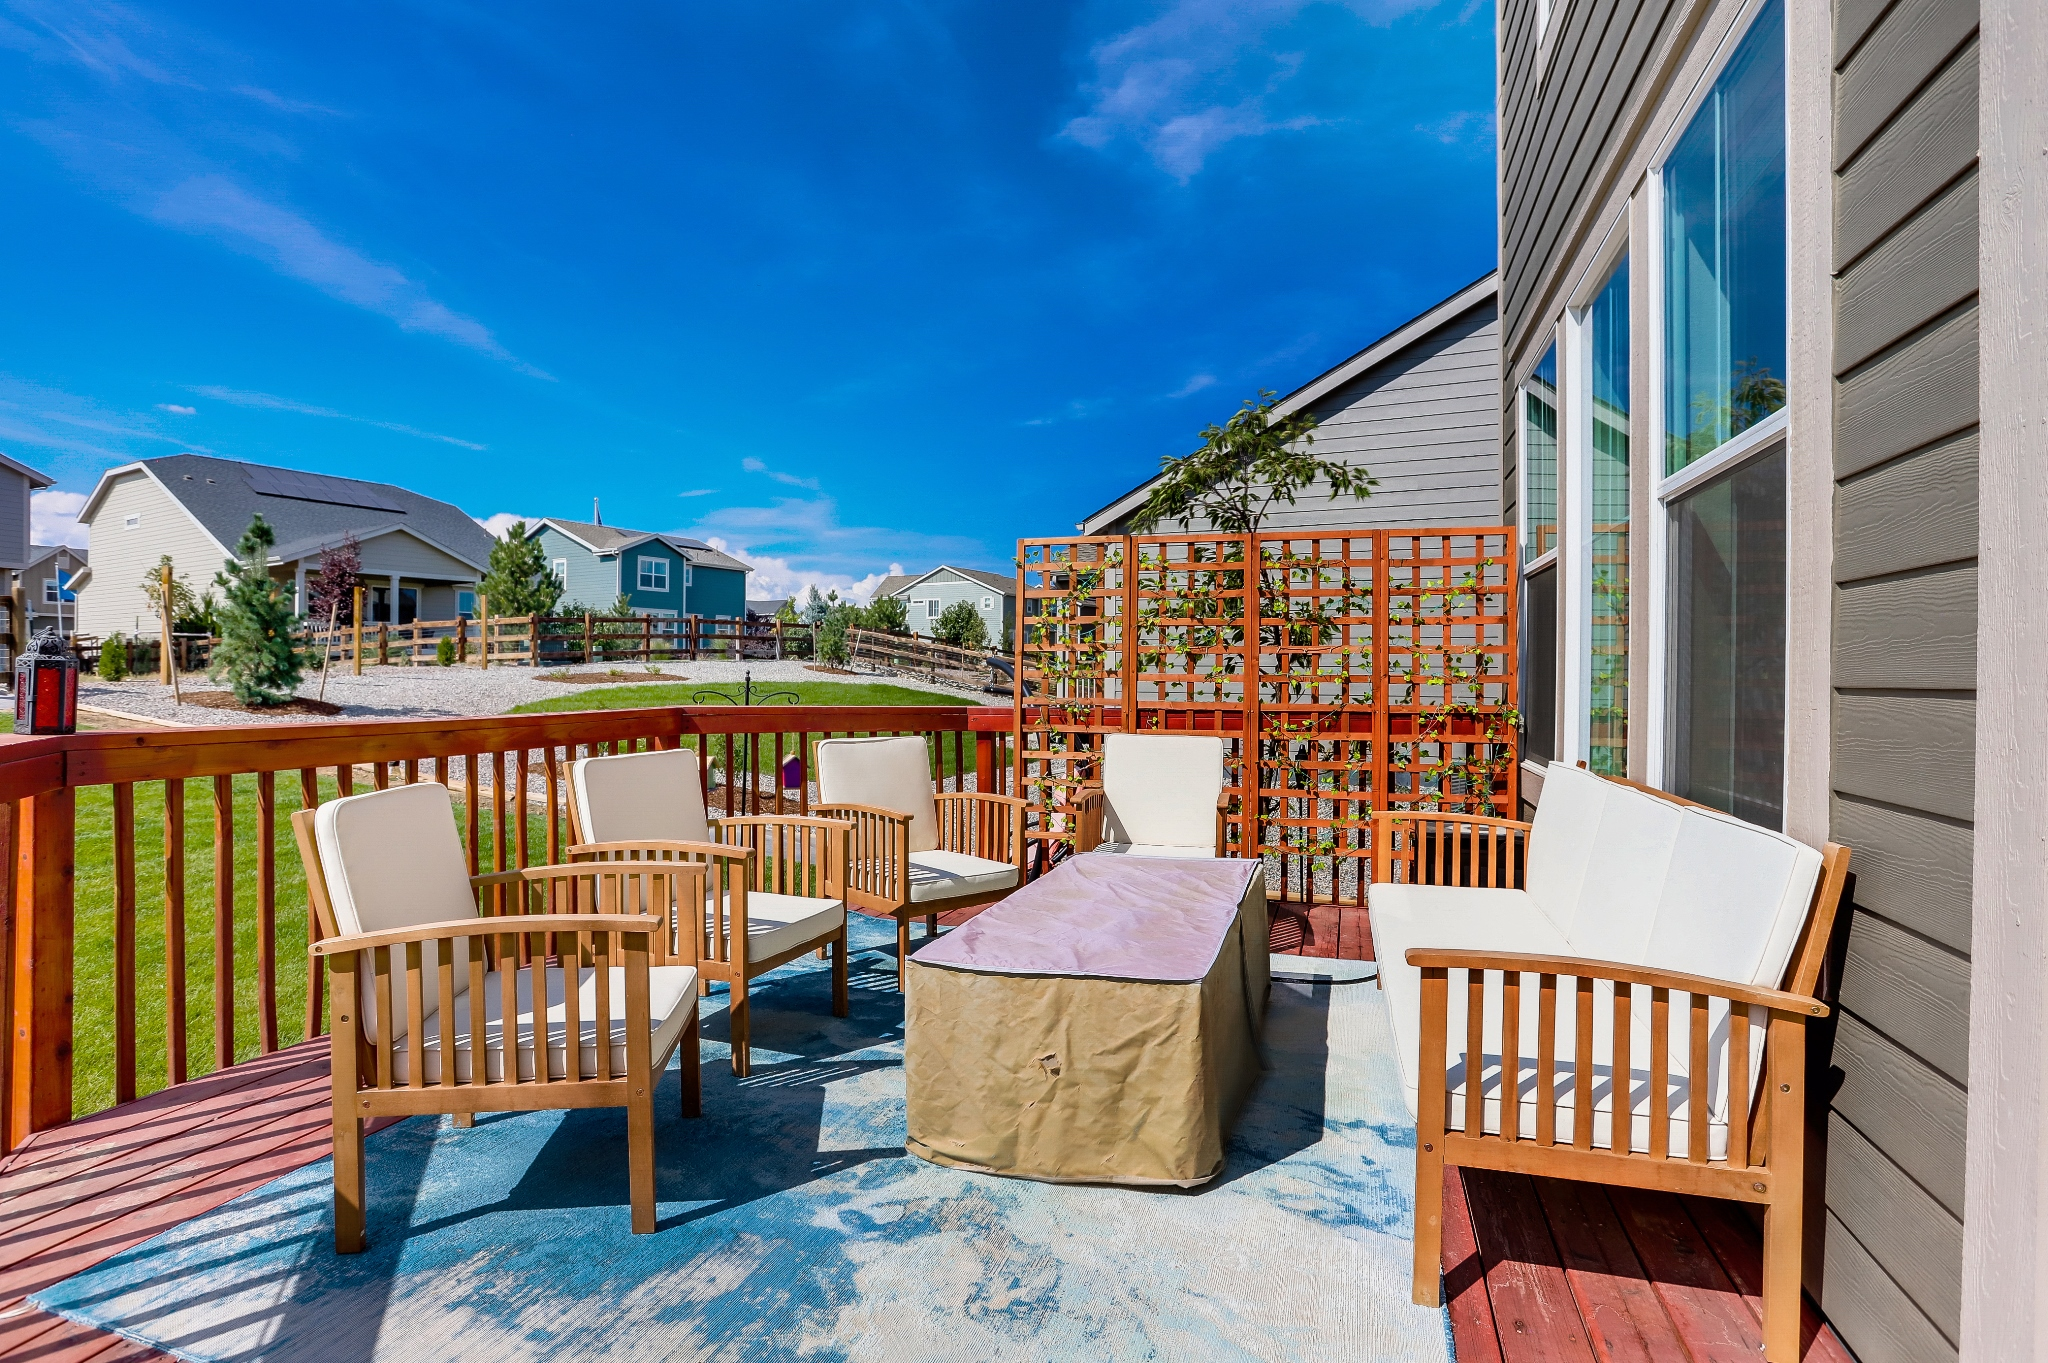 REAL ESTATE LISTING: 12813 Clearview St Firestone Back Deck